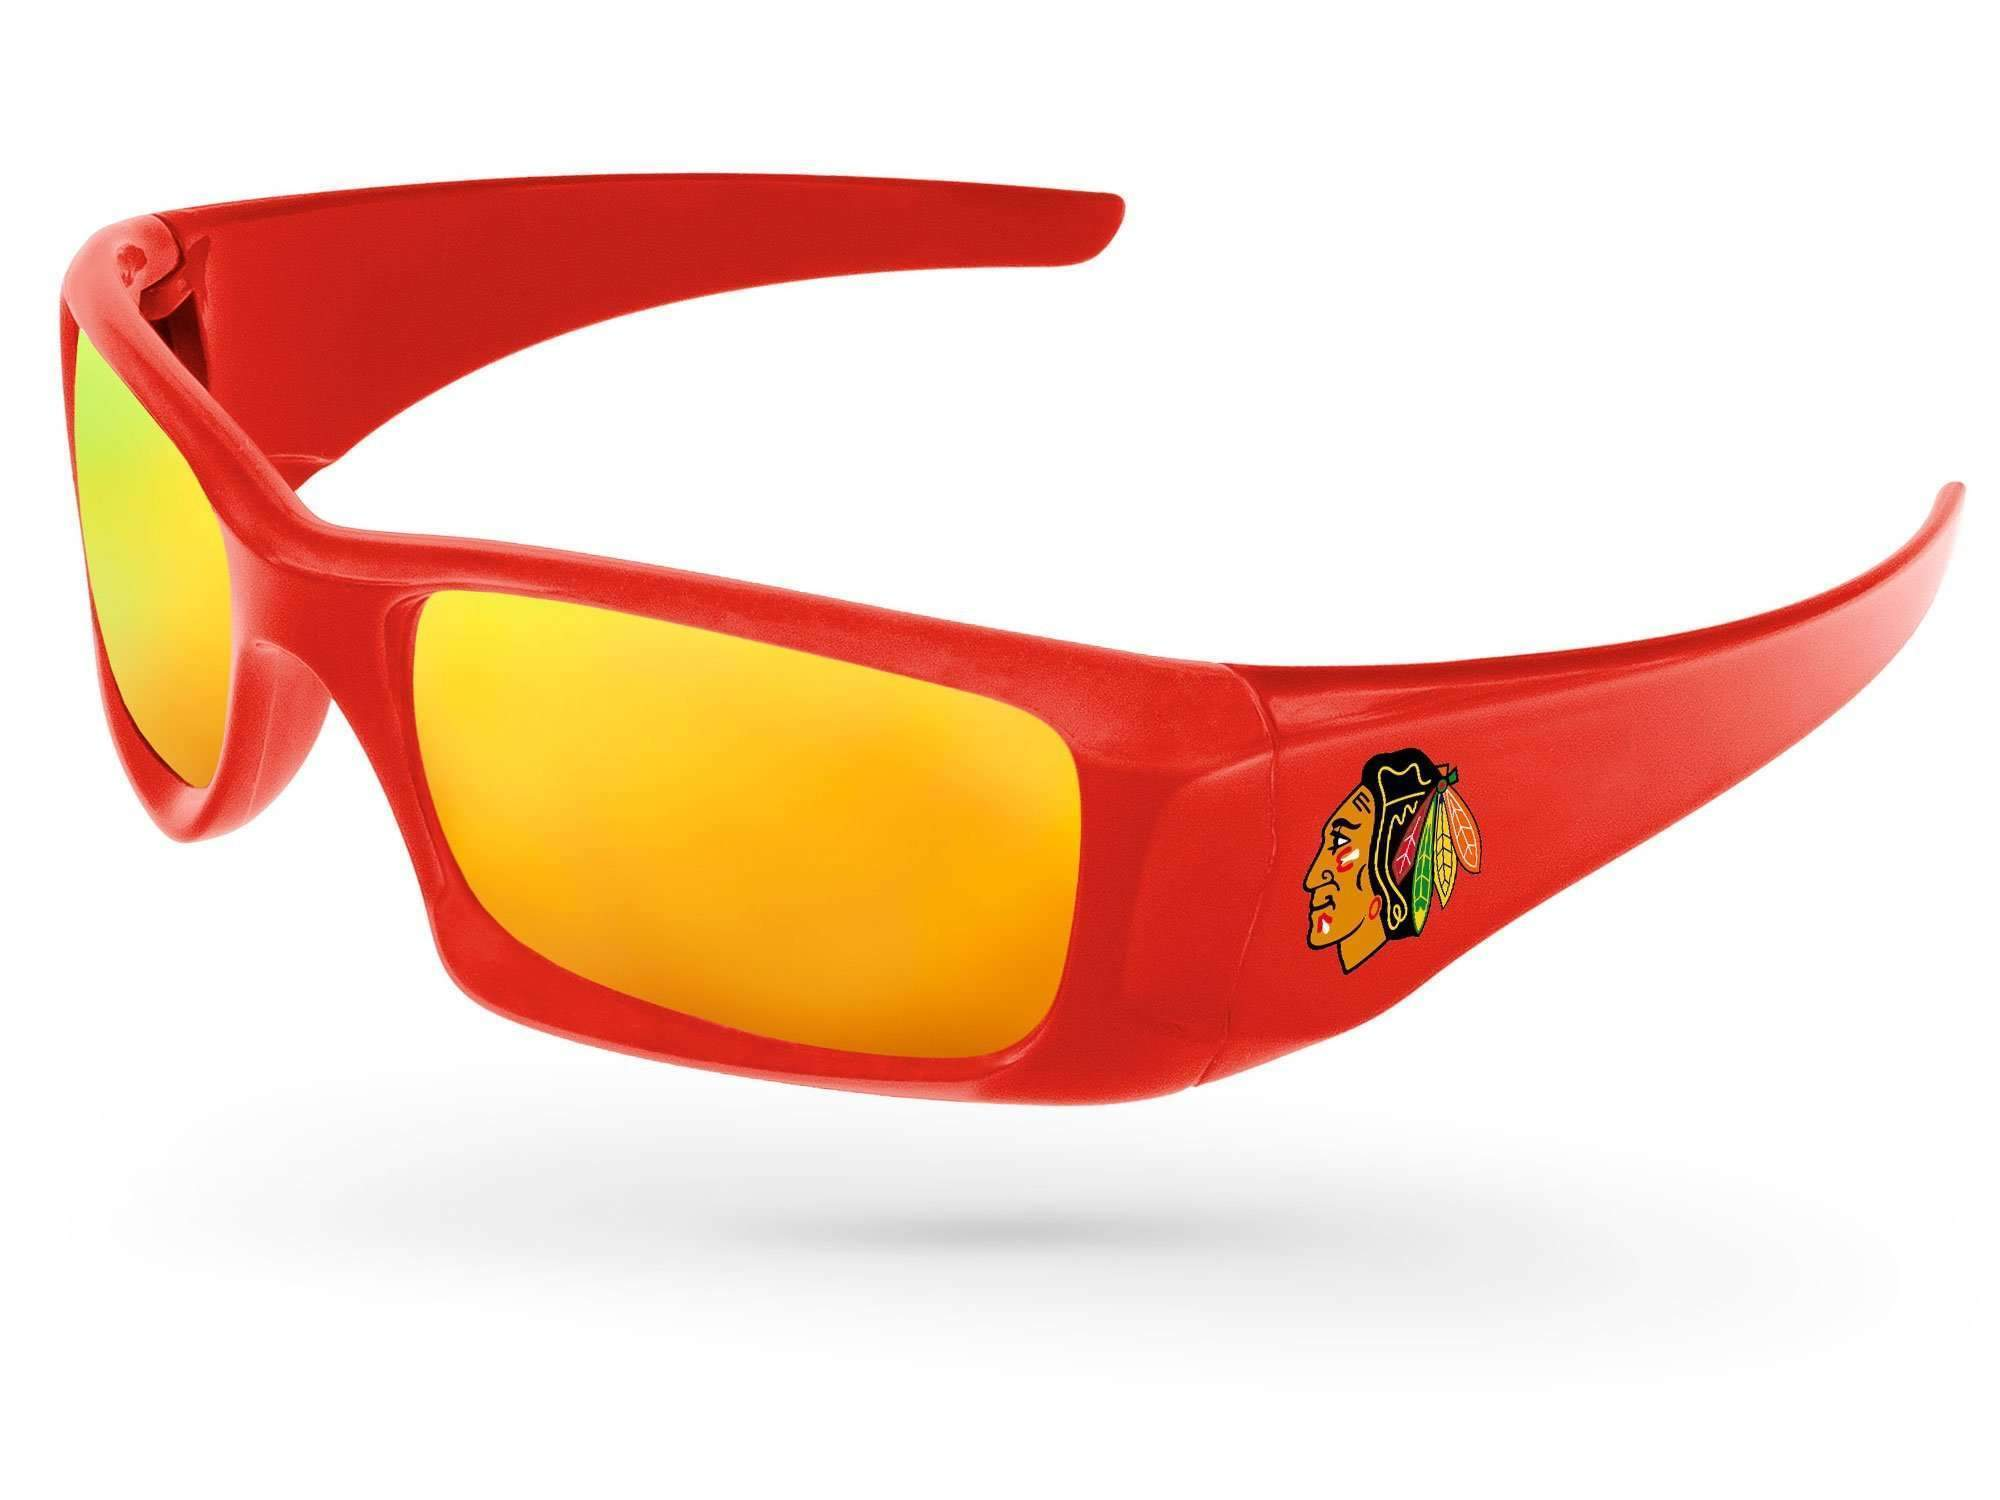 Wrap Mirror Promotional Sunglasses w/ full-color temple imprint